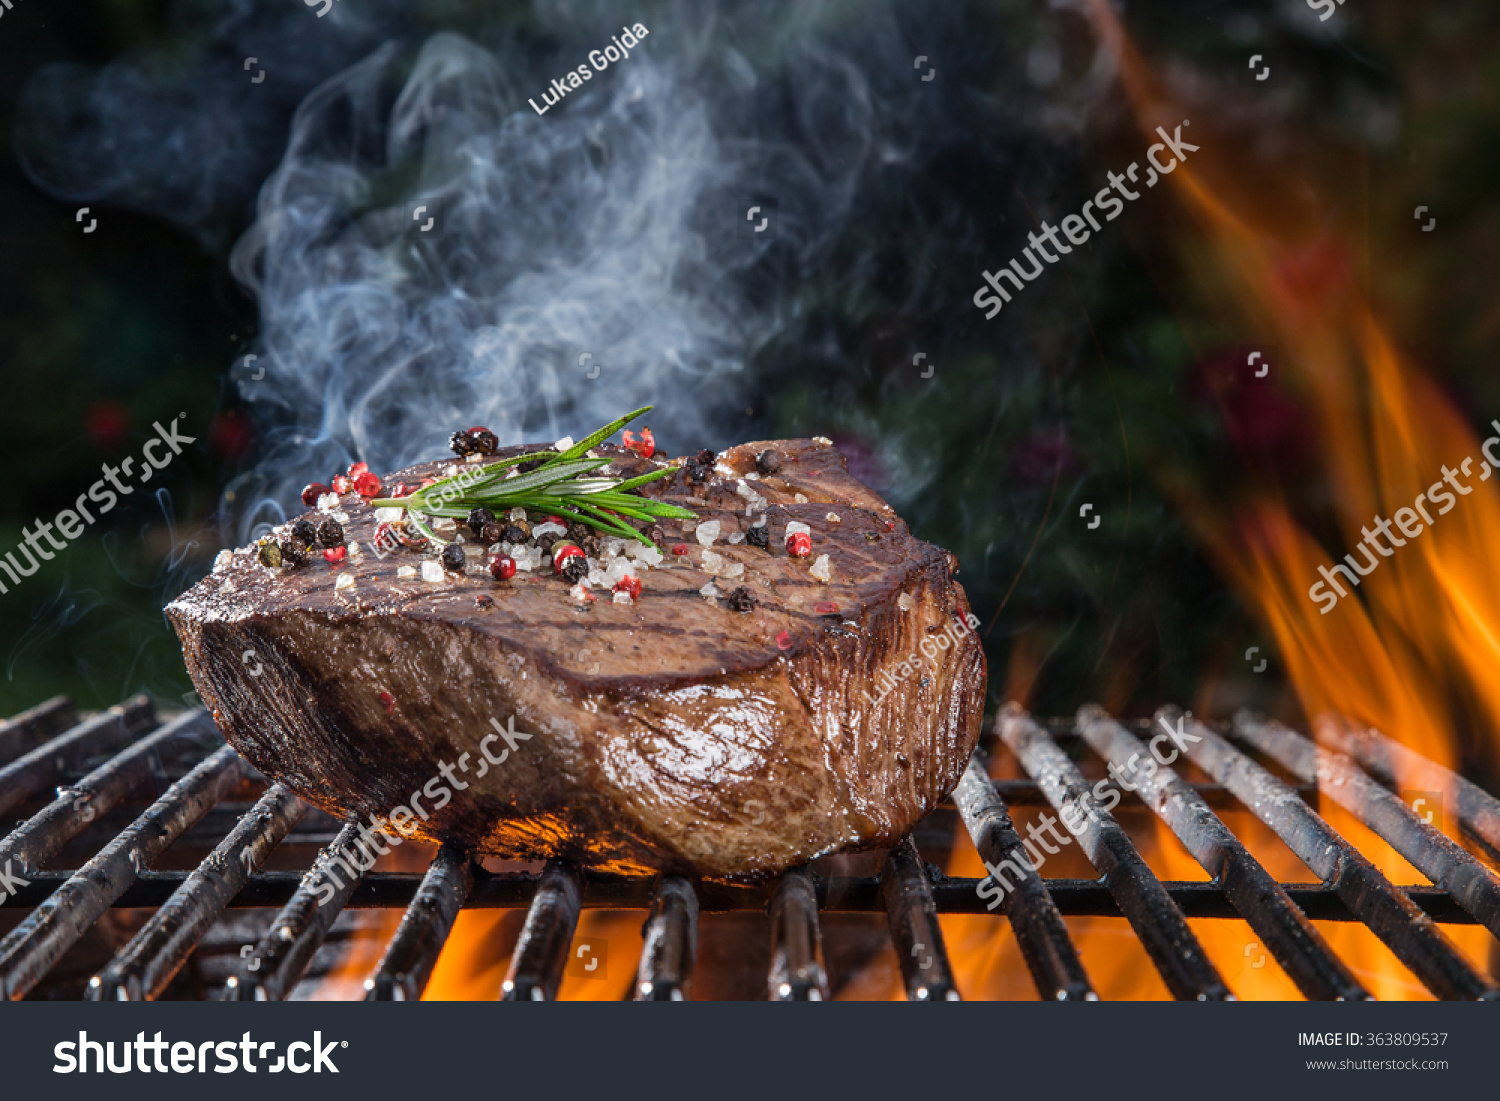 Steak op grill test